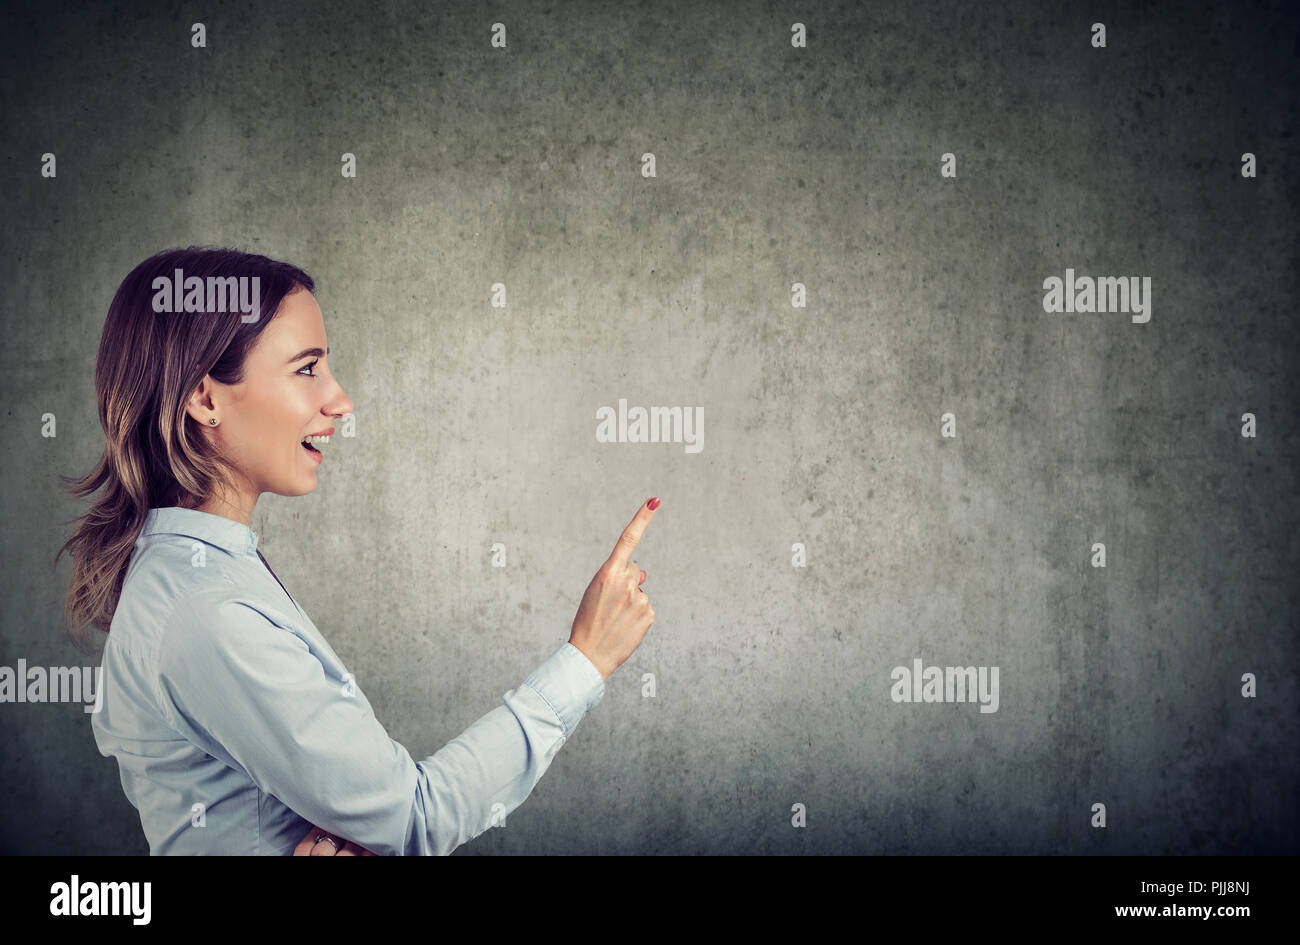 Side view of excited woman holding finger up having bright idea on gray background - Stock Image